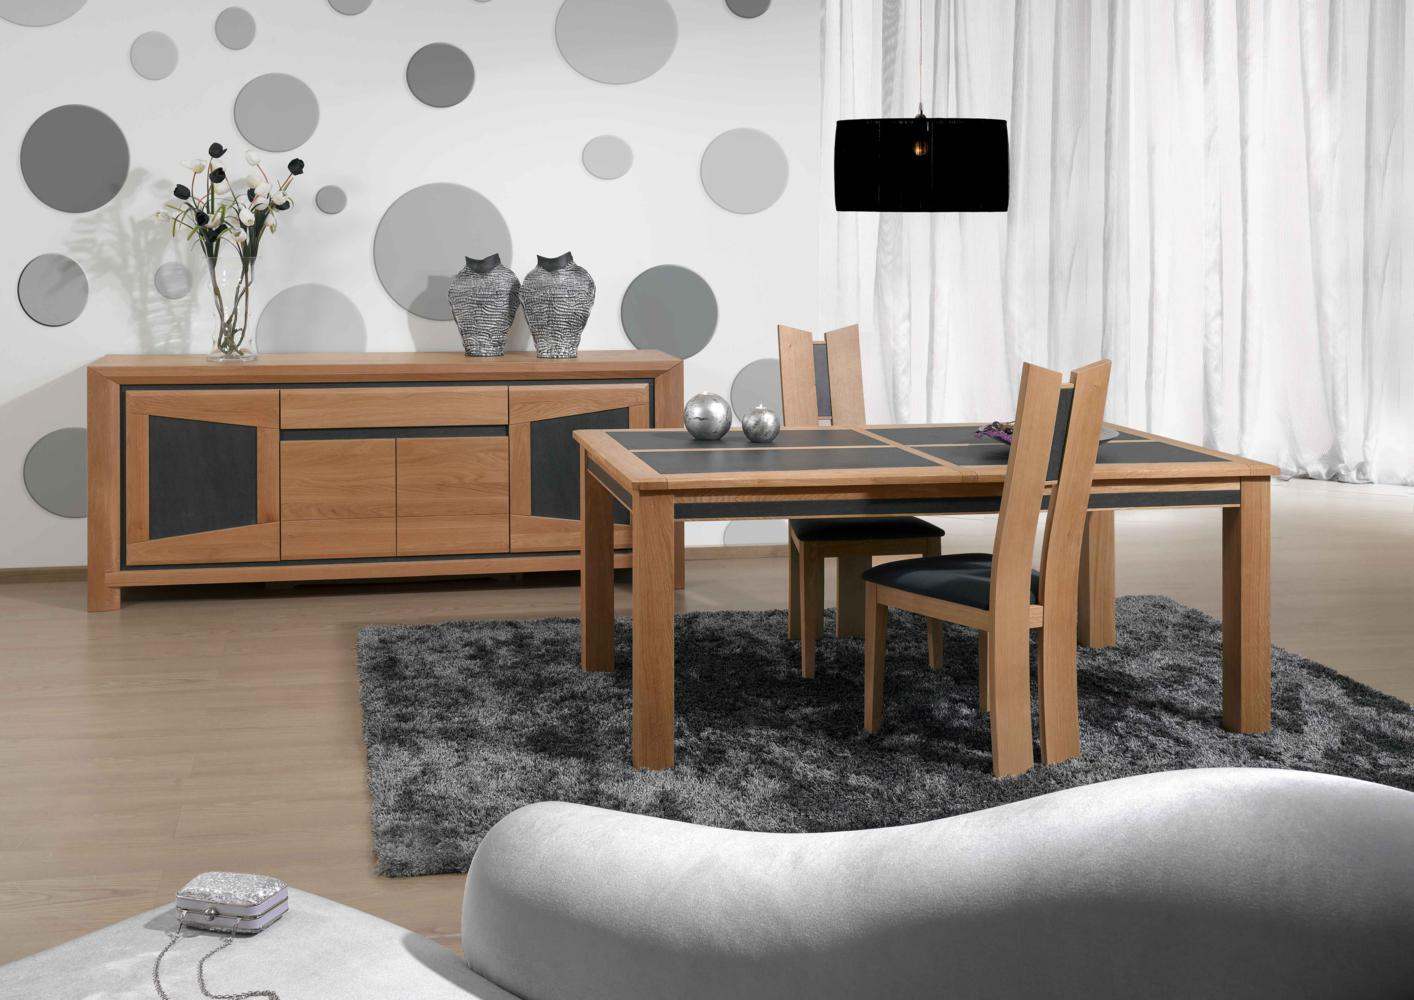 acheter votre table rectangulaire chene massif extensible dessus ceramique chez simeuble. Black Bedroom Furniture Sets. Home Design Ideas